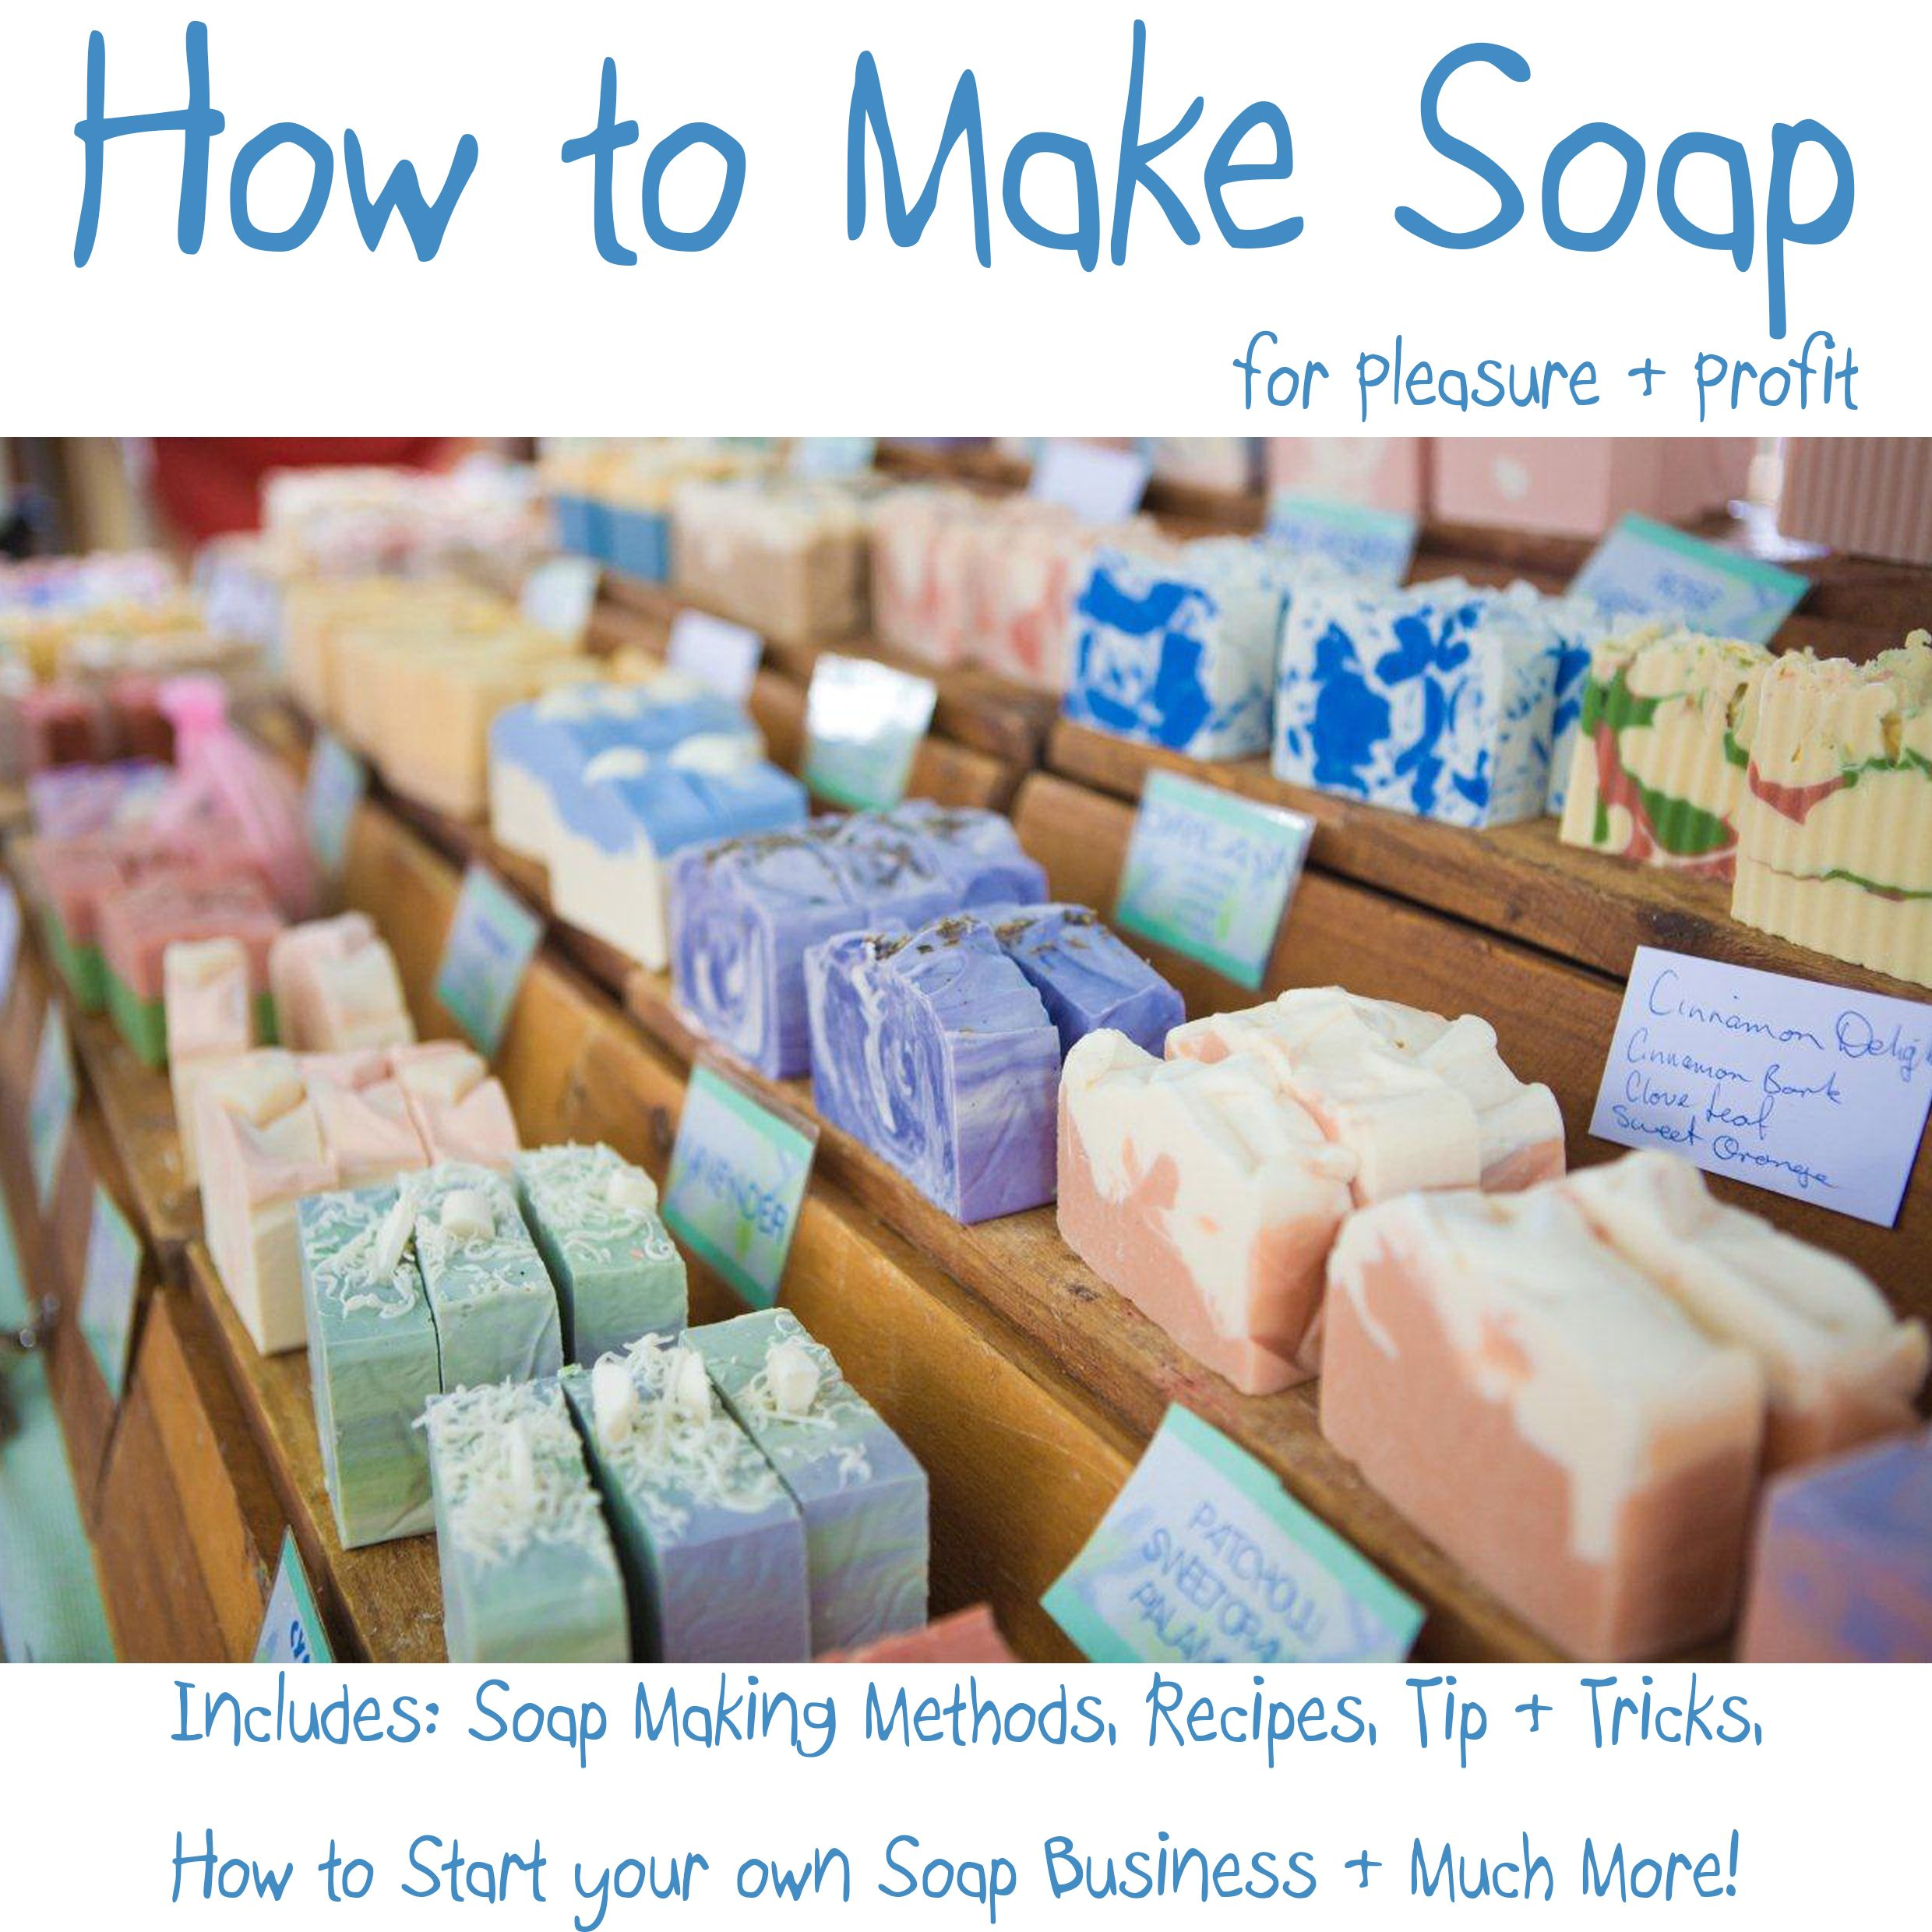 First Step To Making Your Own Soap Soap Making Soap Making Kits Home Made Soap